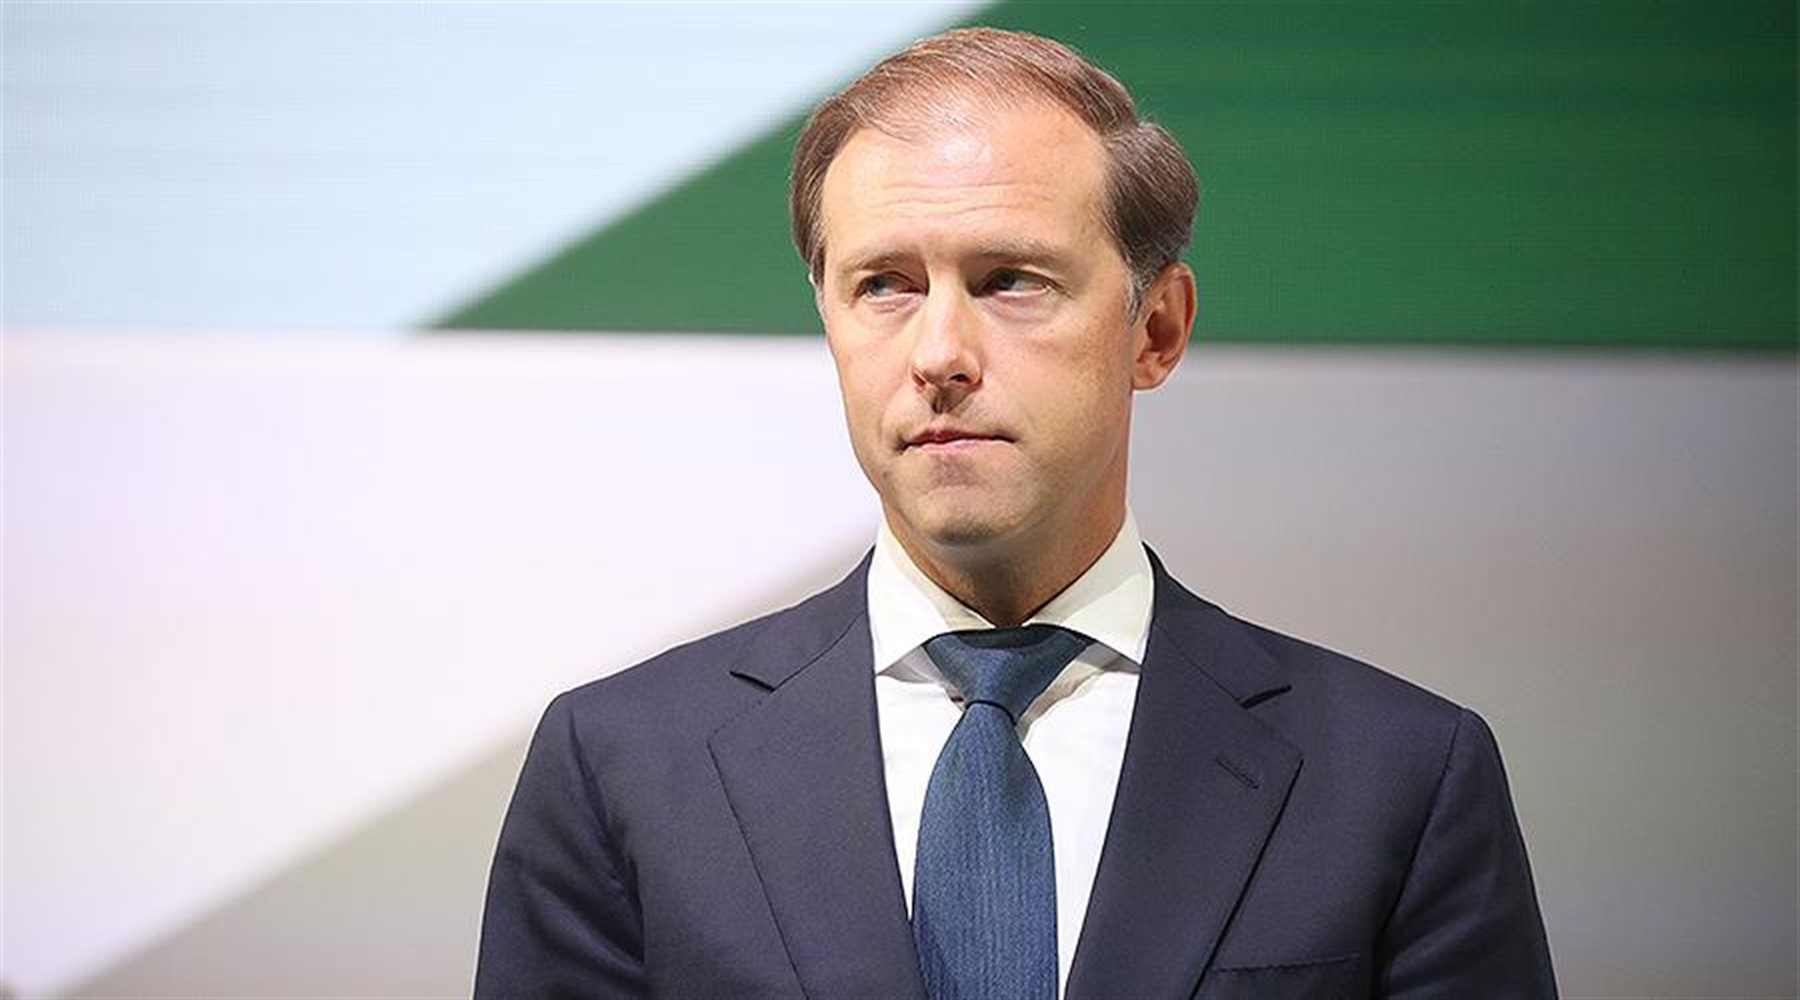 Photo of Manturov allows the appearance of a coronavirus vaccine until the end of 2020